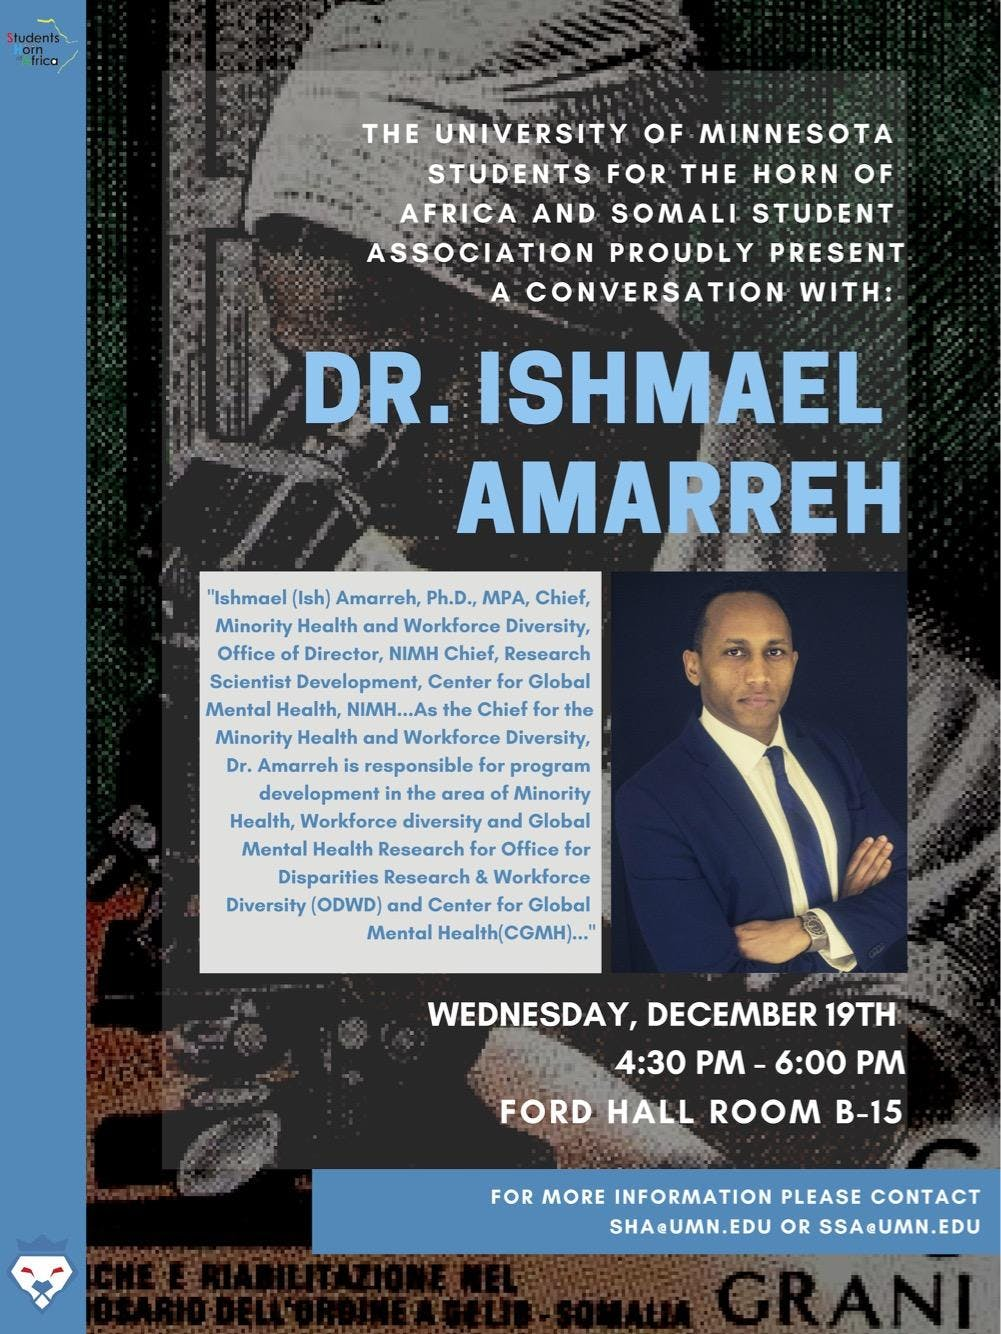 Conversation with Dr. Ishmael Amarreh